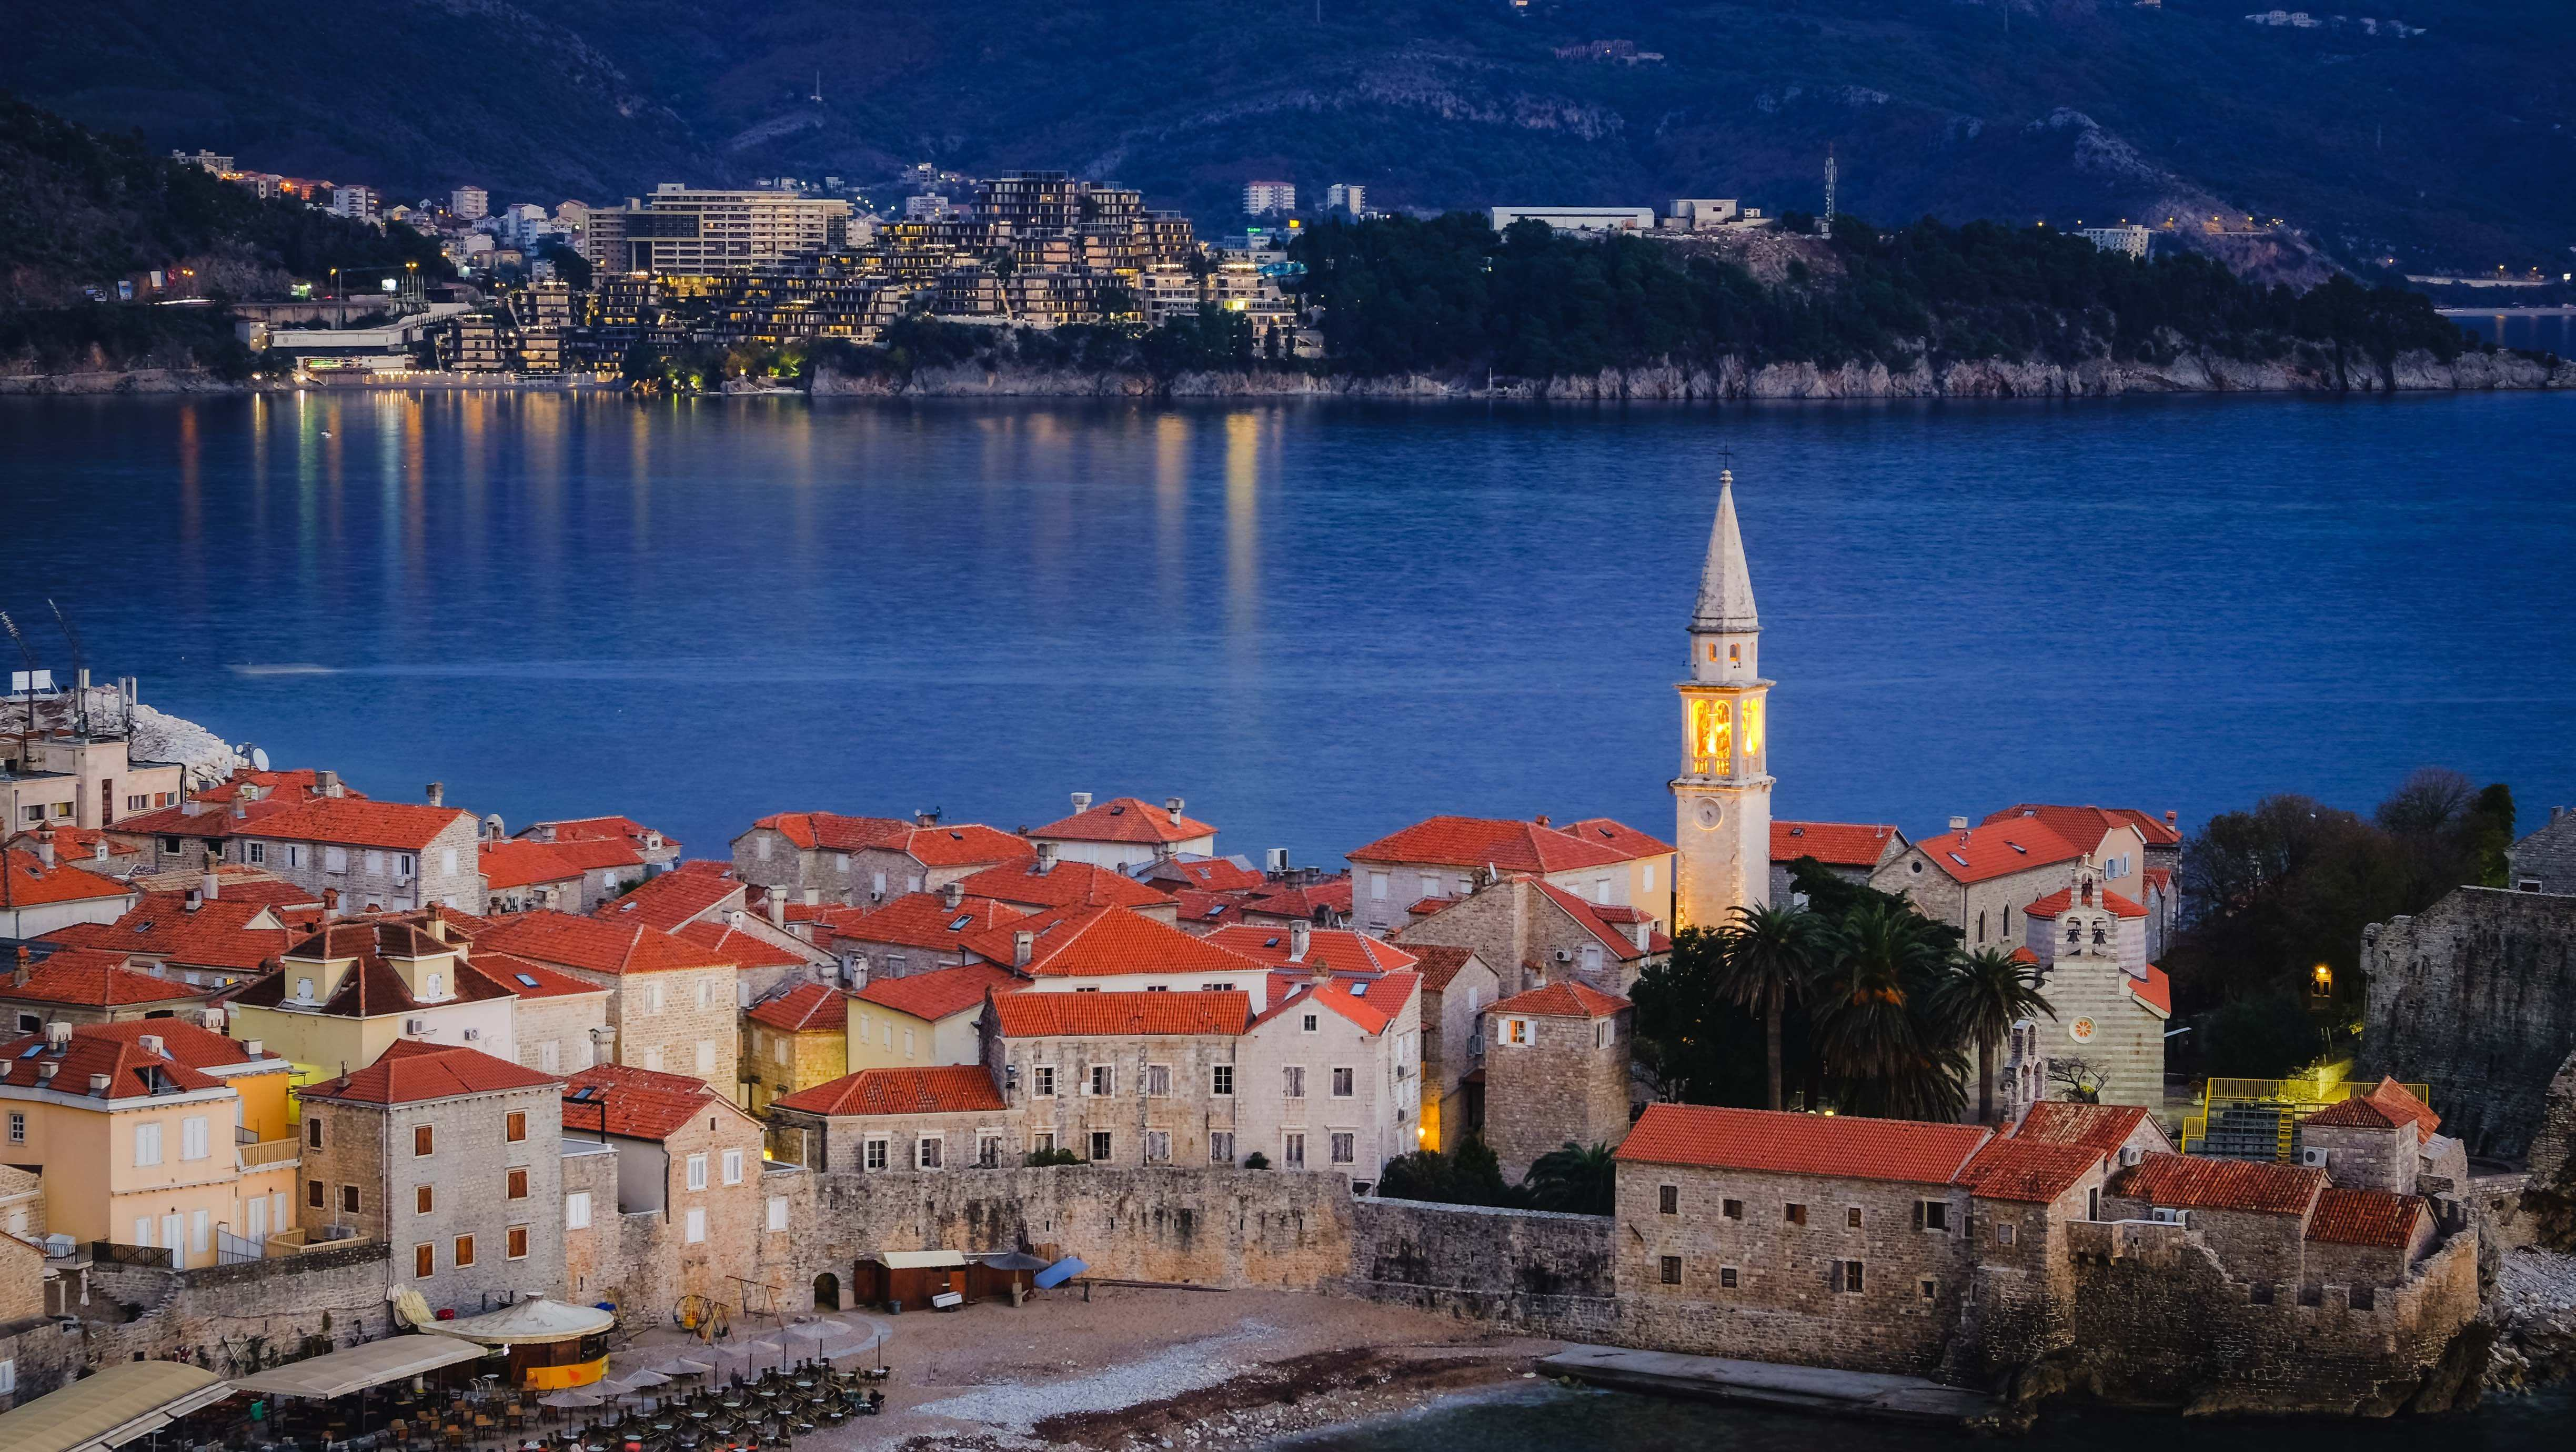 A stunning night view of the lively old town in Budva.